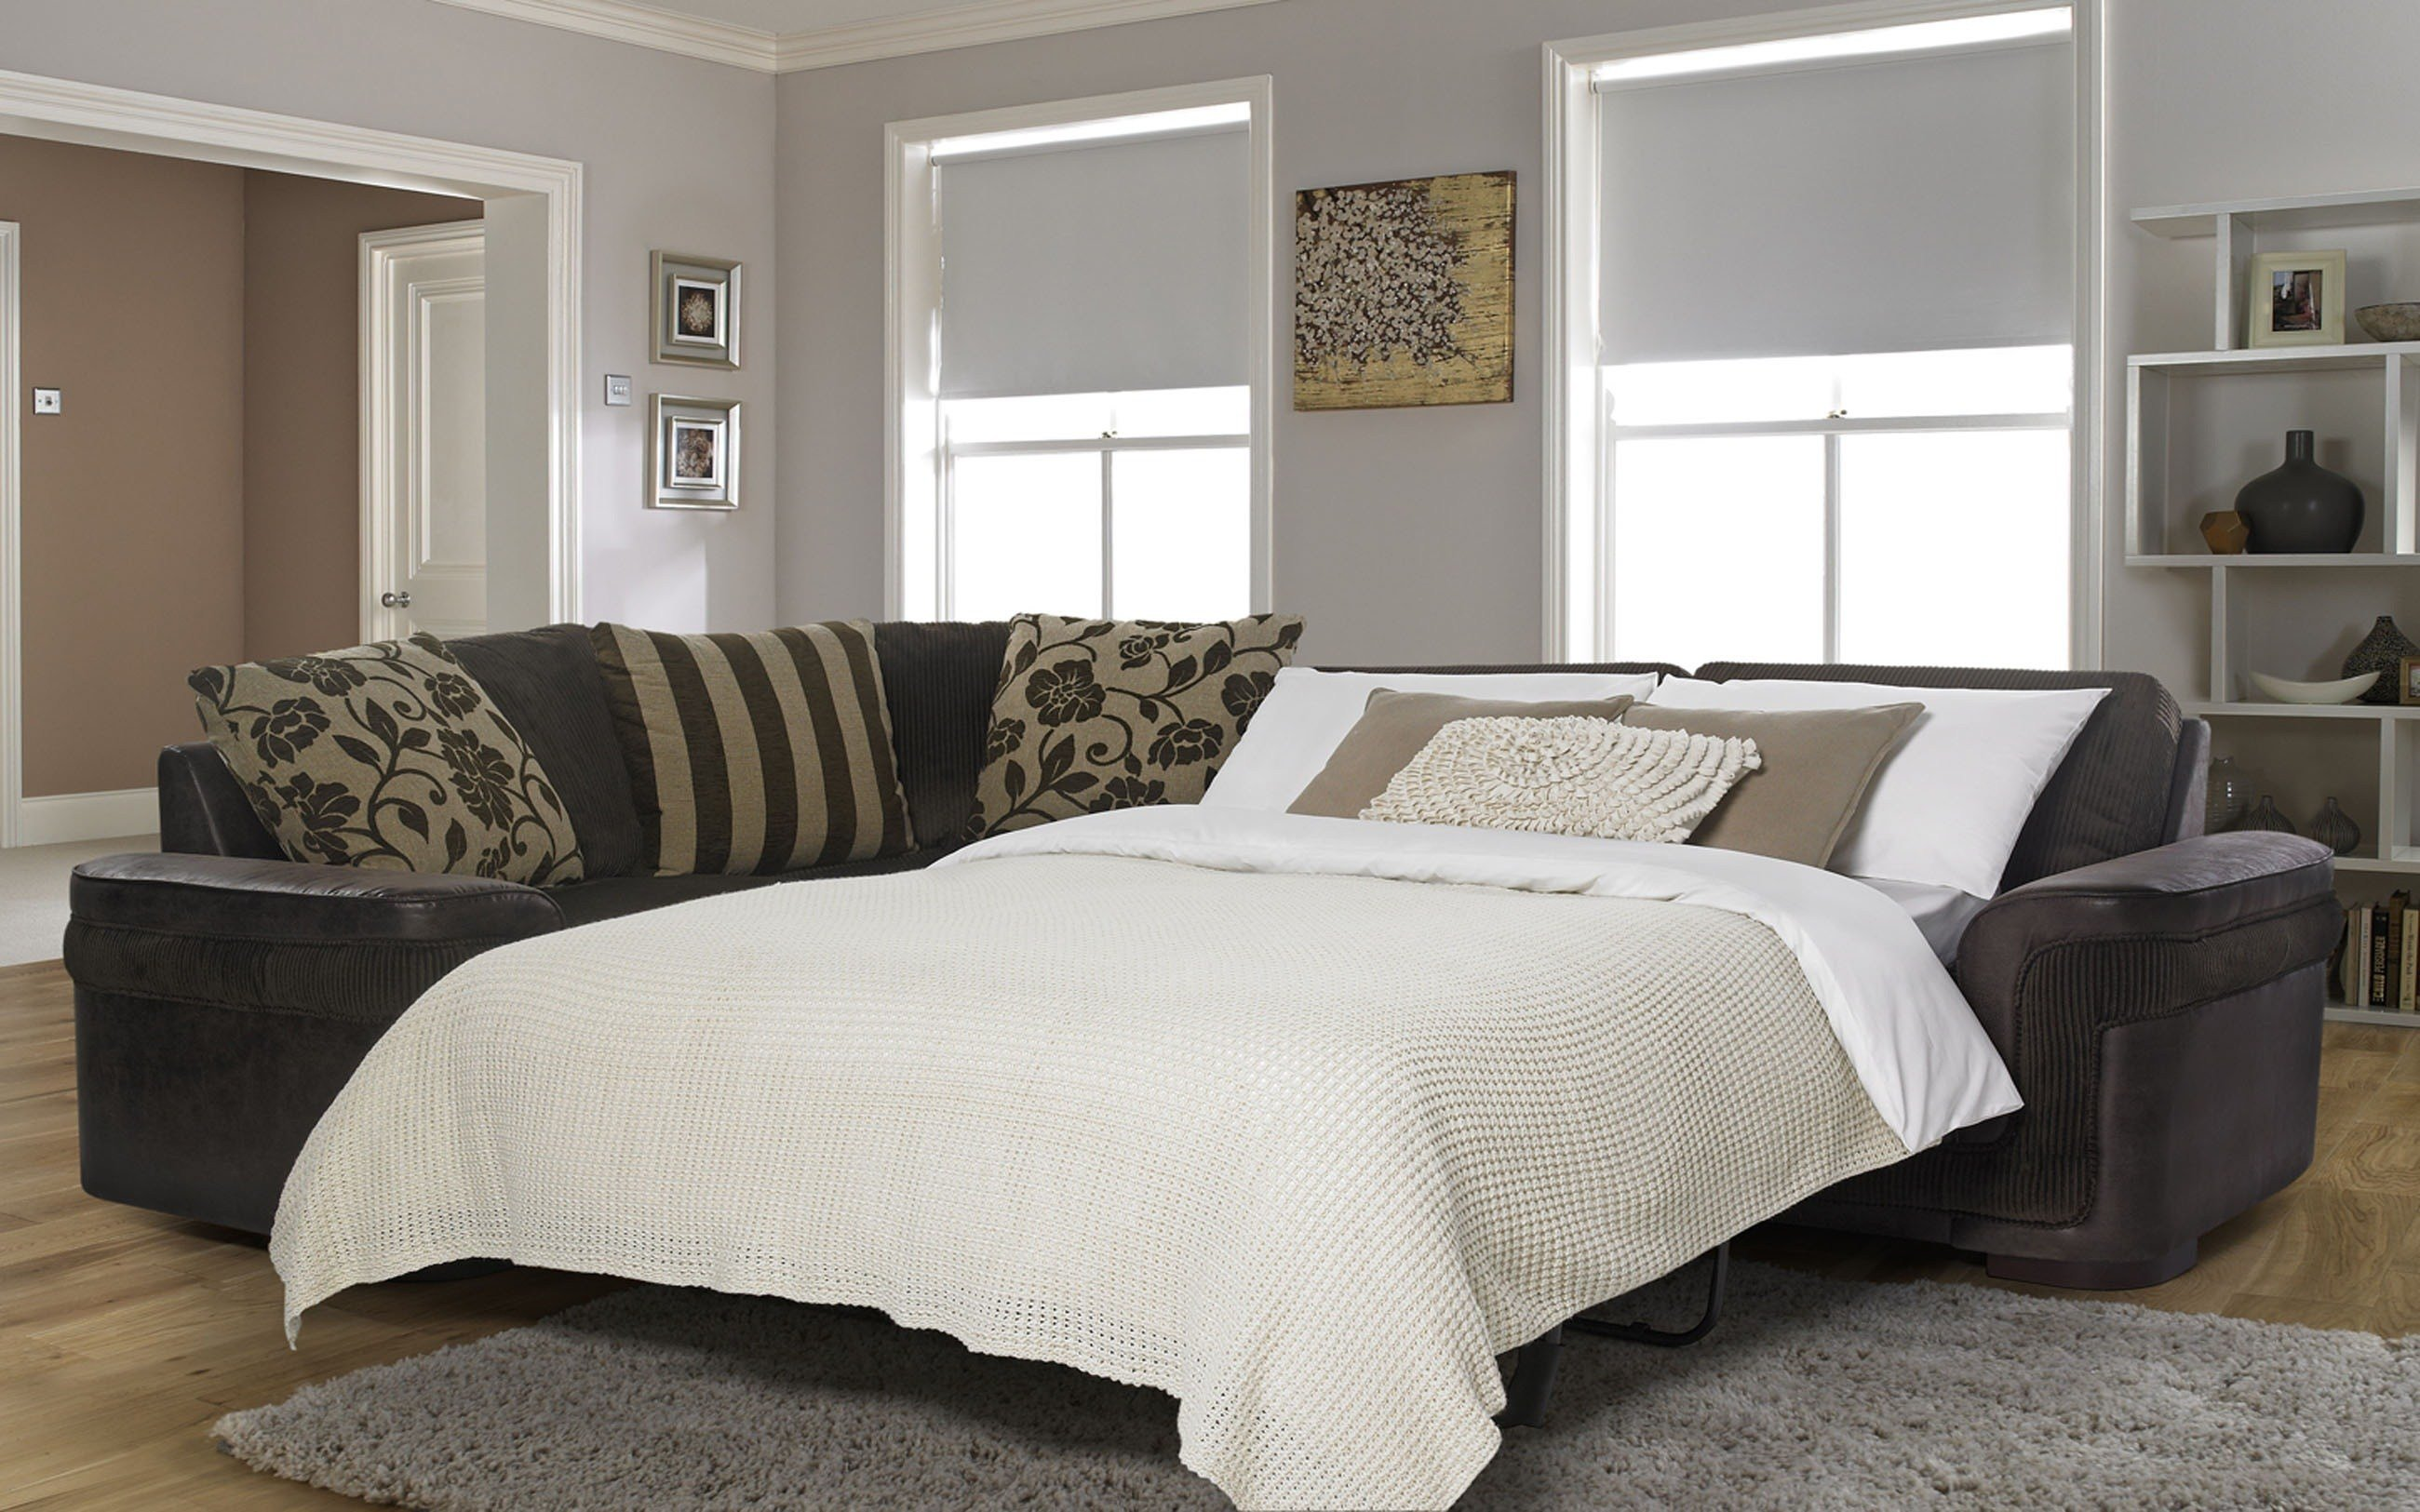 Best Select The Amazing Bedroom Sofa Designs Atzine Com With Pictures